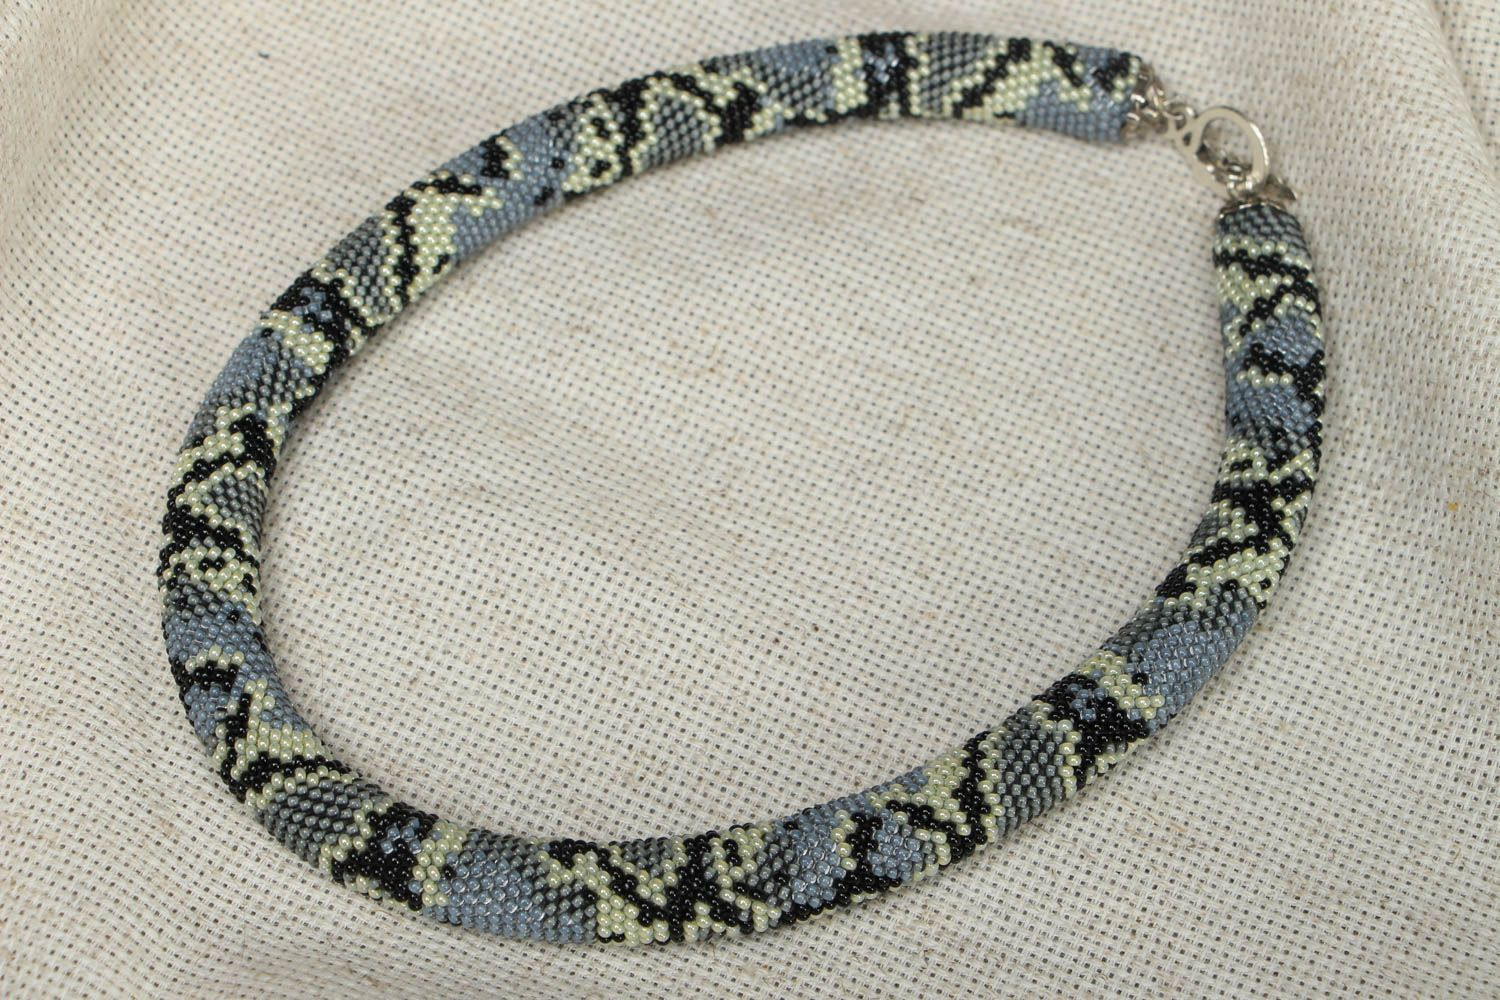 Homemade beaded cord necklace photo 1